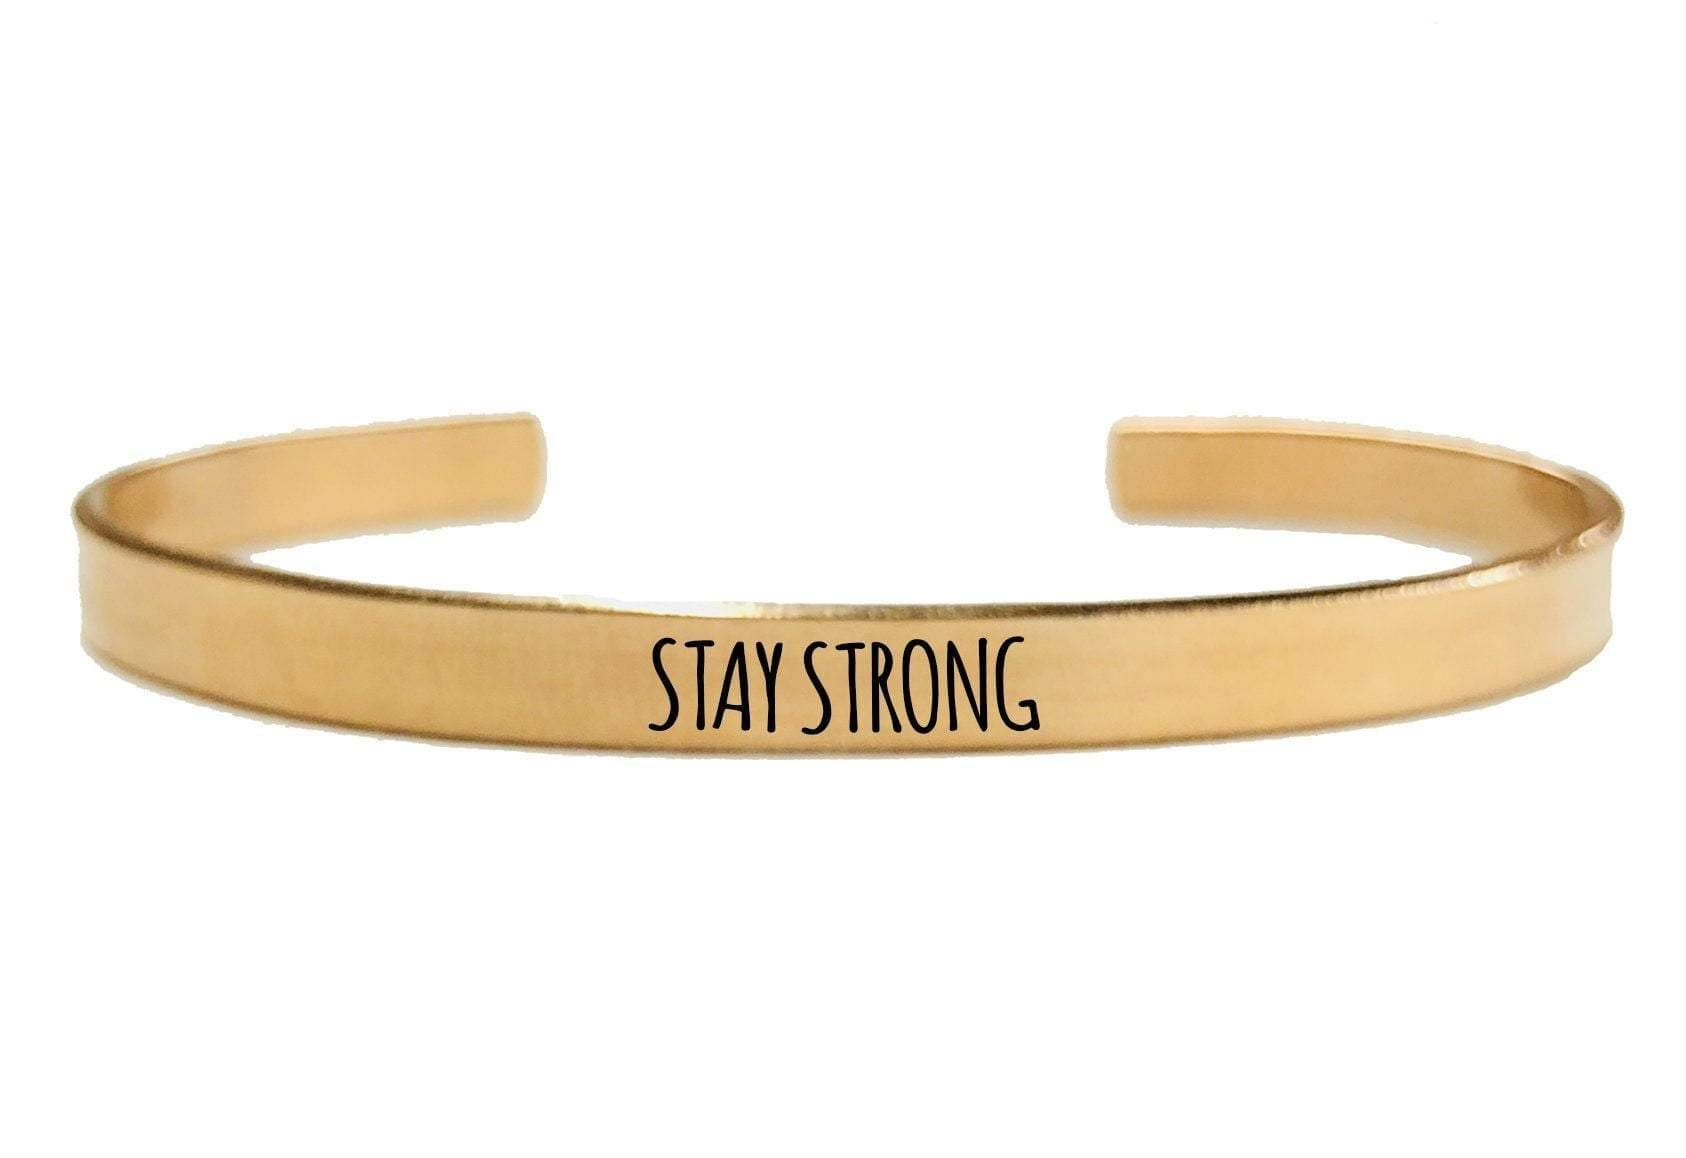 STAY STRONG CUFF BRACELET